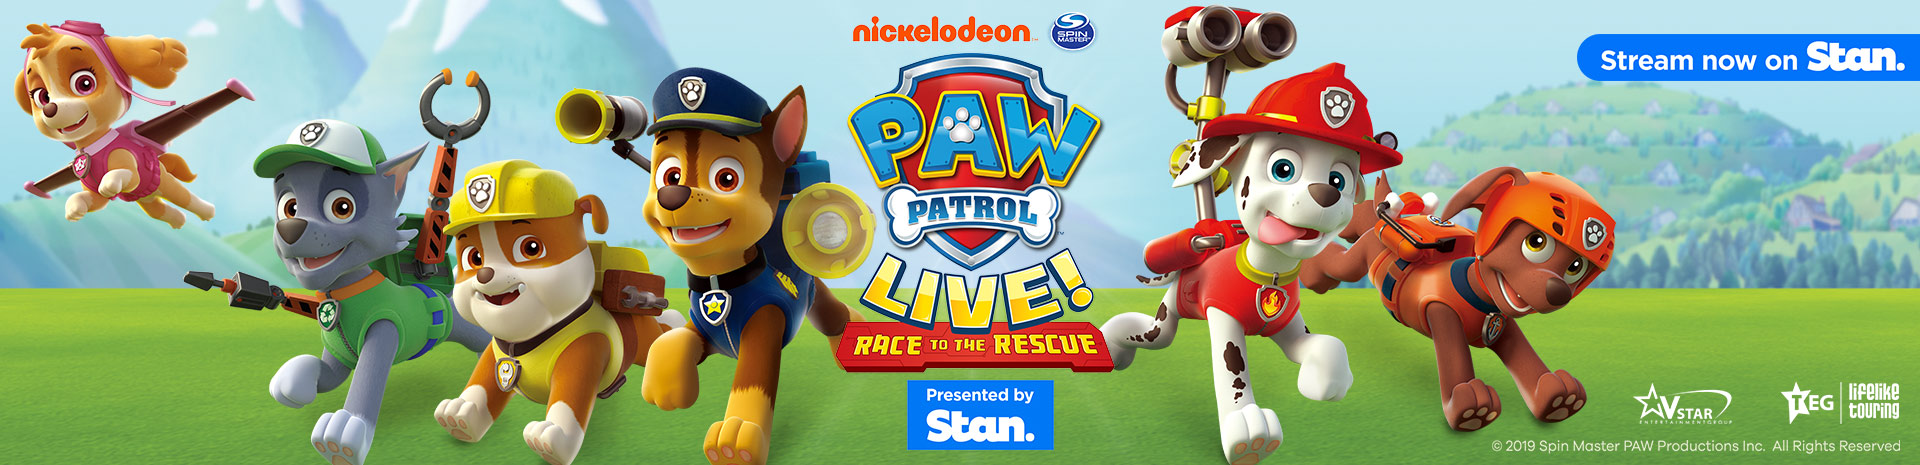 PAW Patrol Live - Race to the Rescue Banner